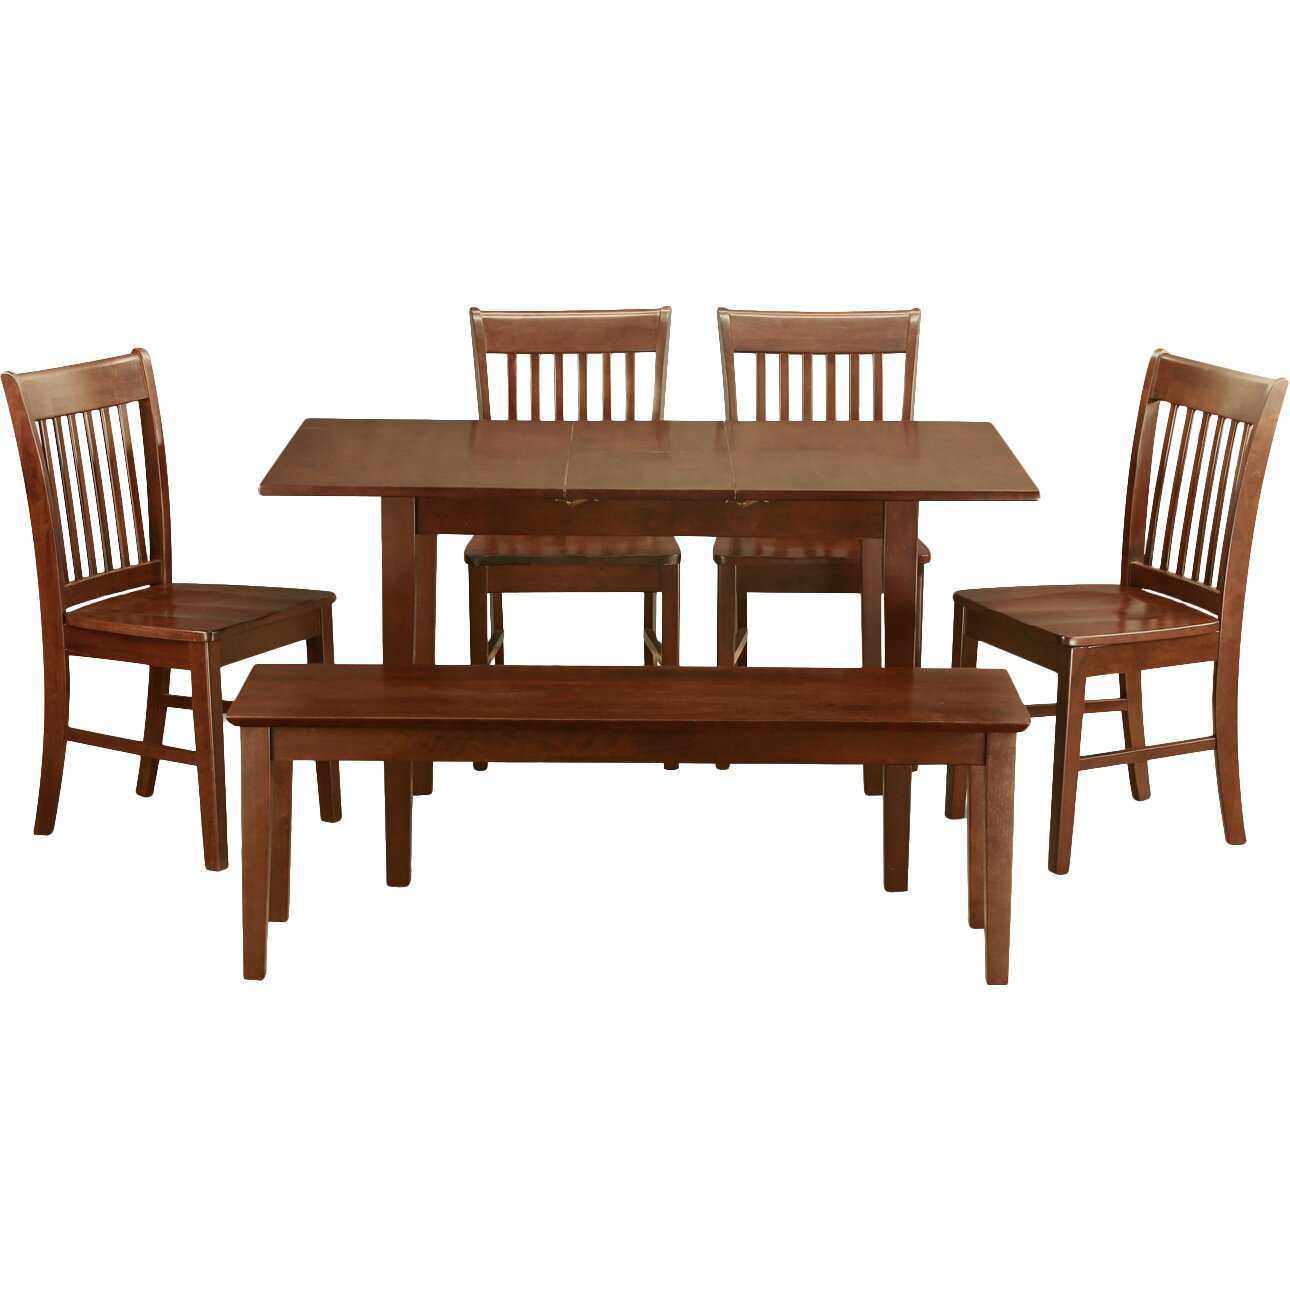 East west norfolk 6 piece dining set reviews wayfair for Dining room sets 6 piece